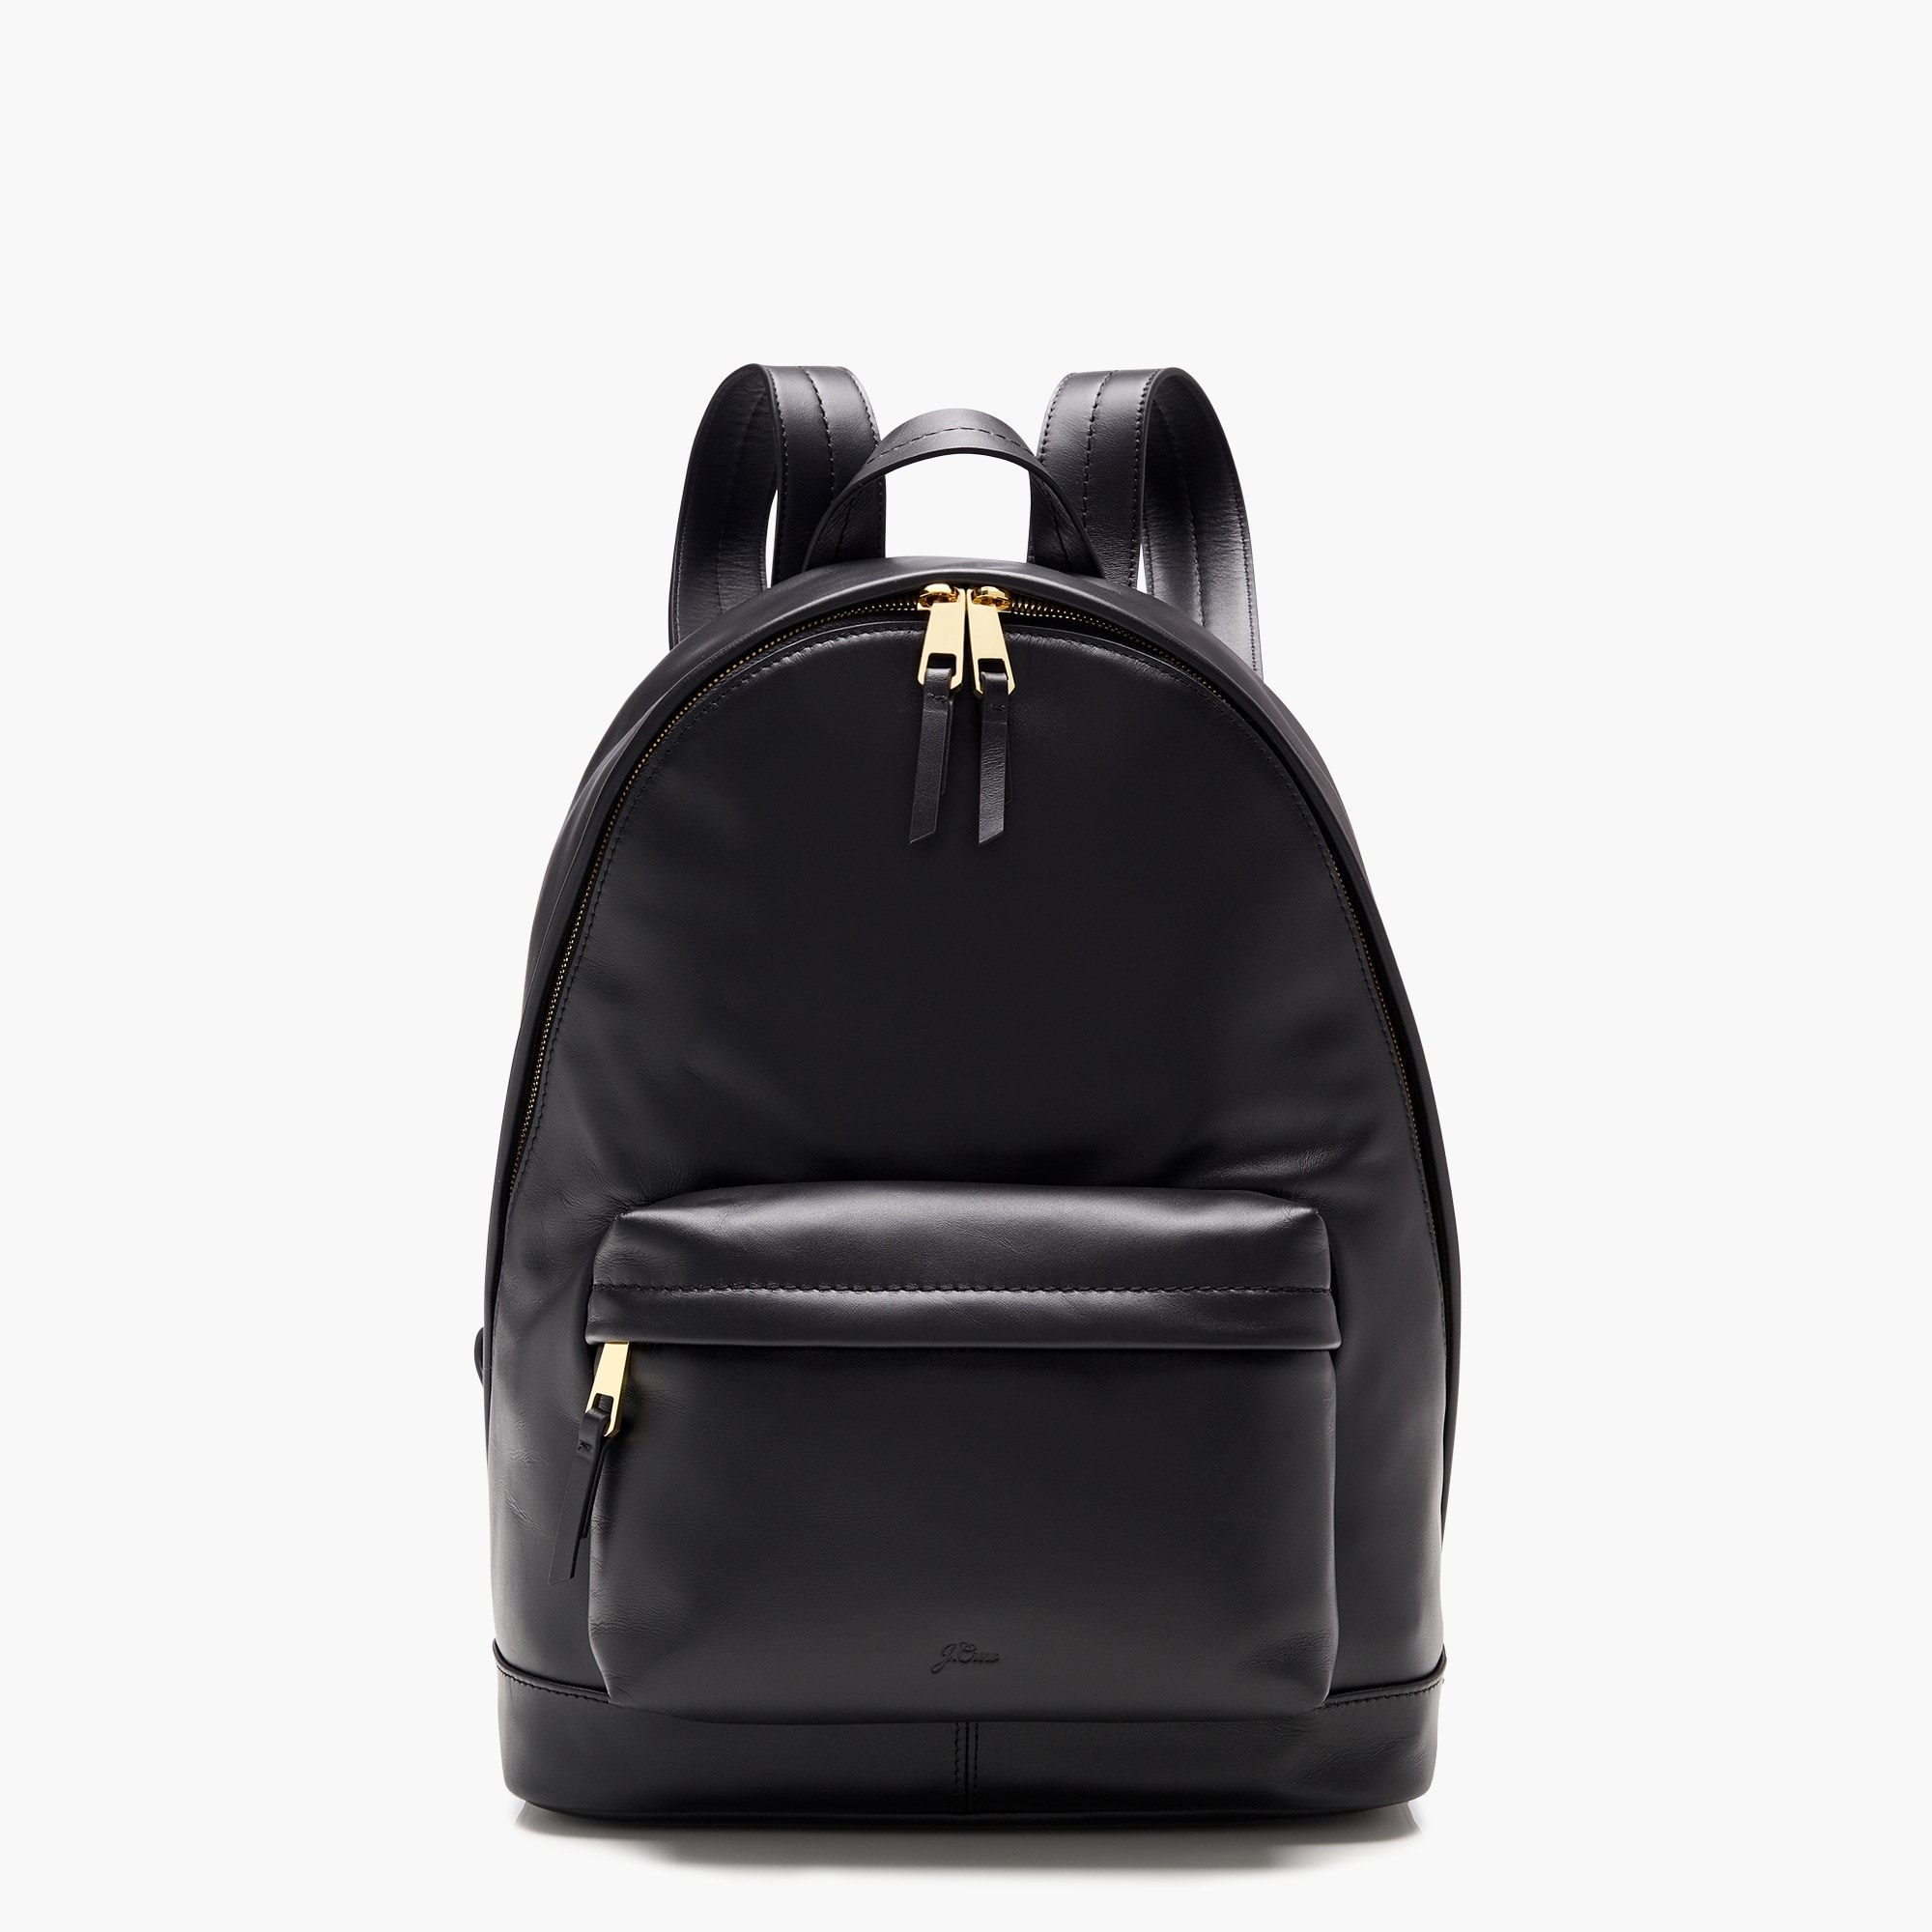 The Harper backpack in Italian leather